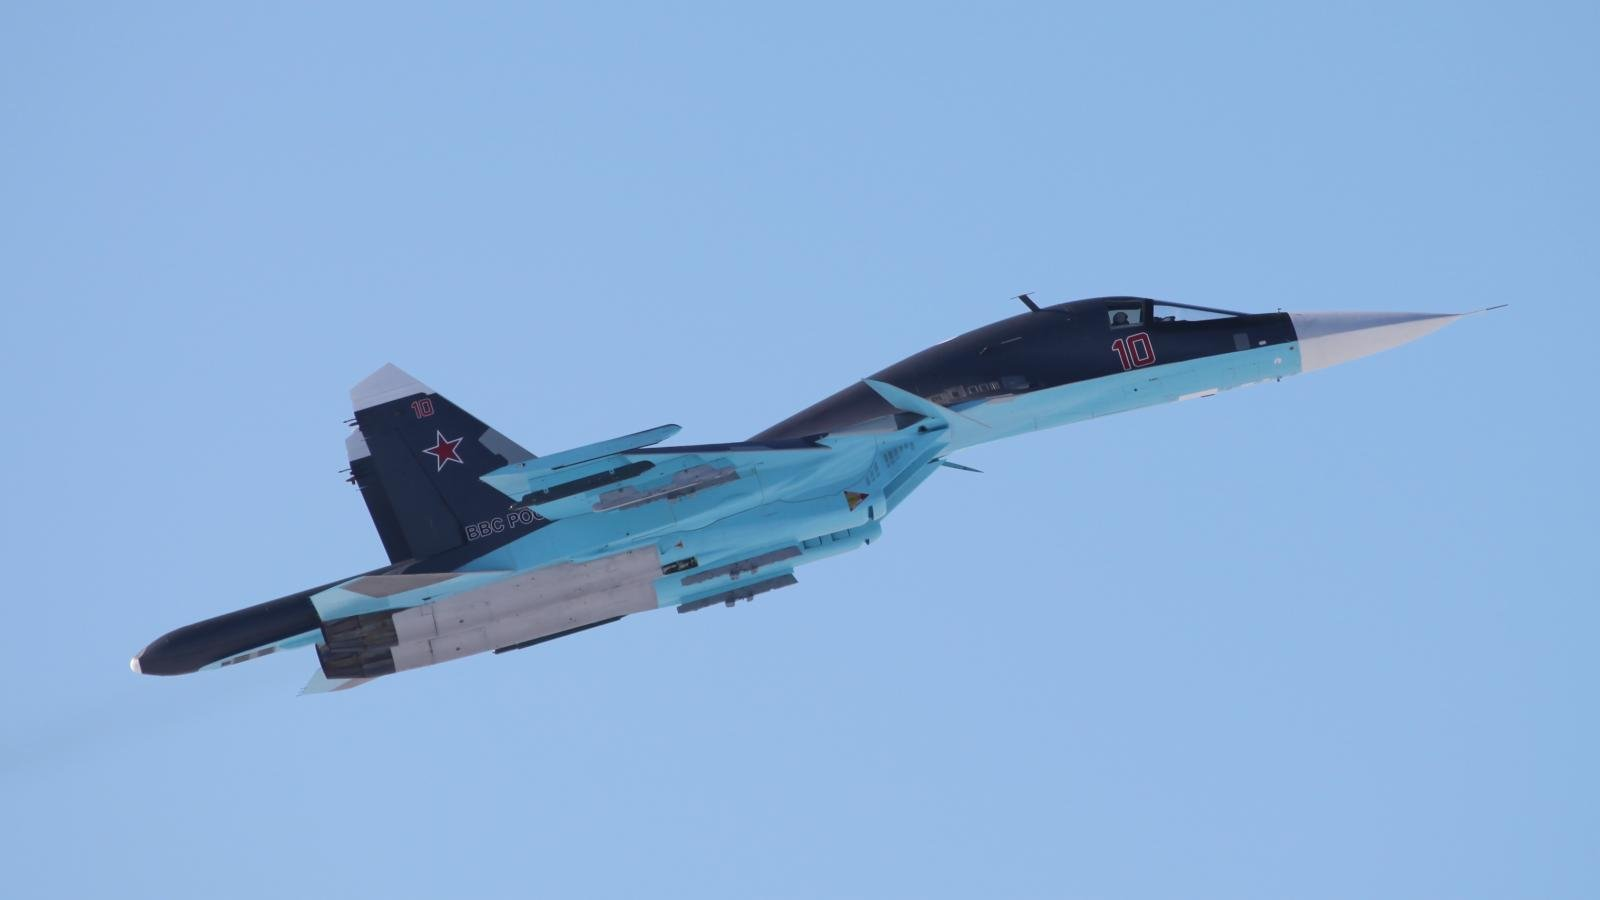 Free download Sukhoi Su-34 wallpaper ID:131798 hd 1600x900 for PC